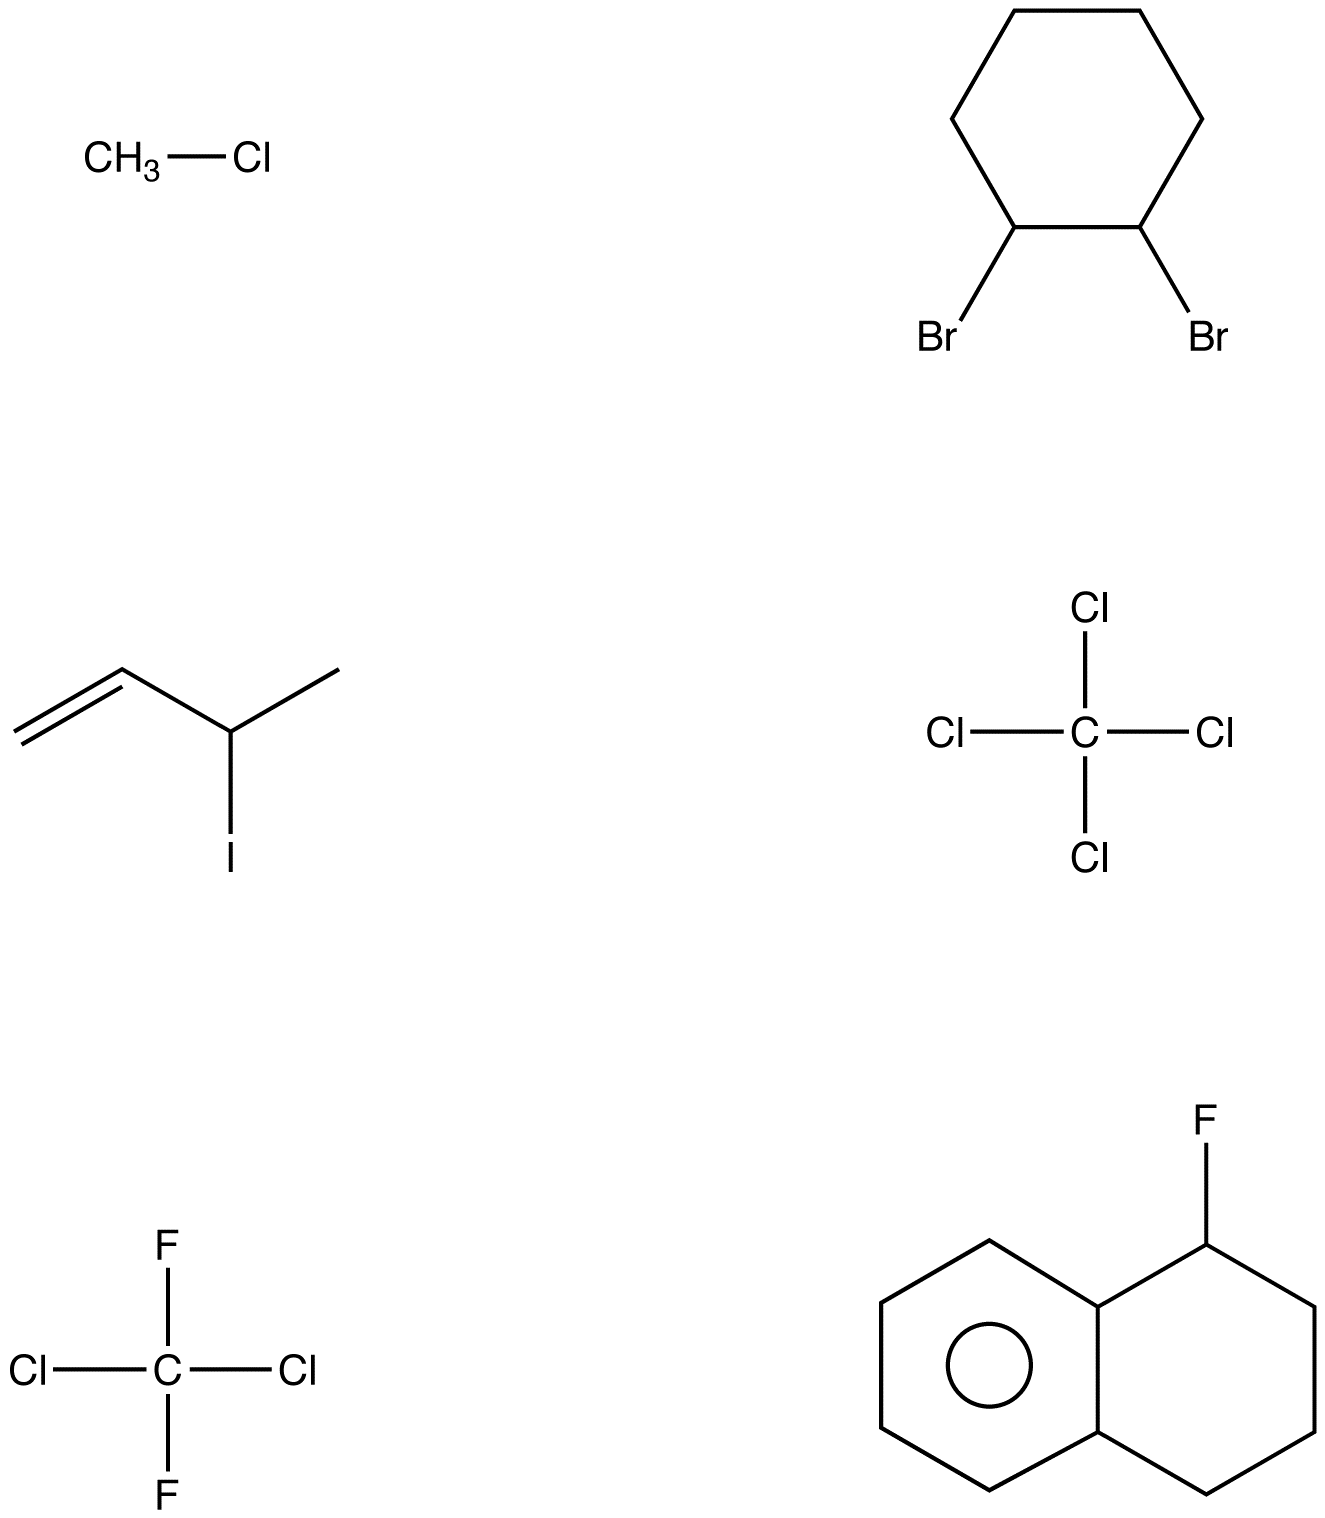 Alkyl Halide Ochempal